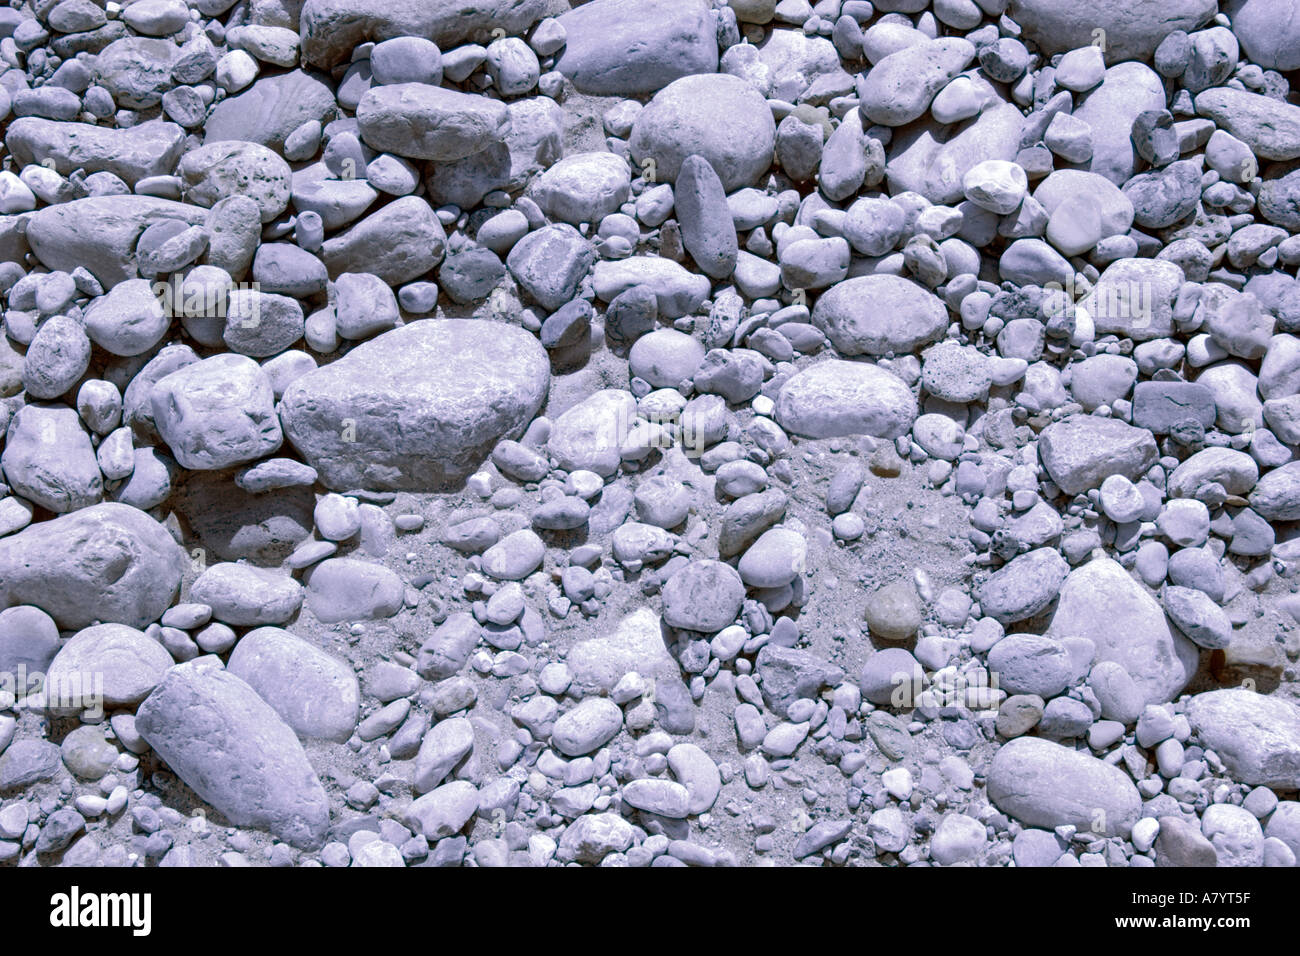 Rocks and pebbles in abstracted colour - Stock Image